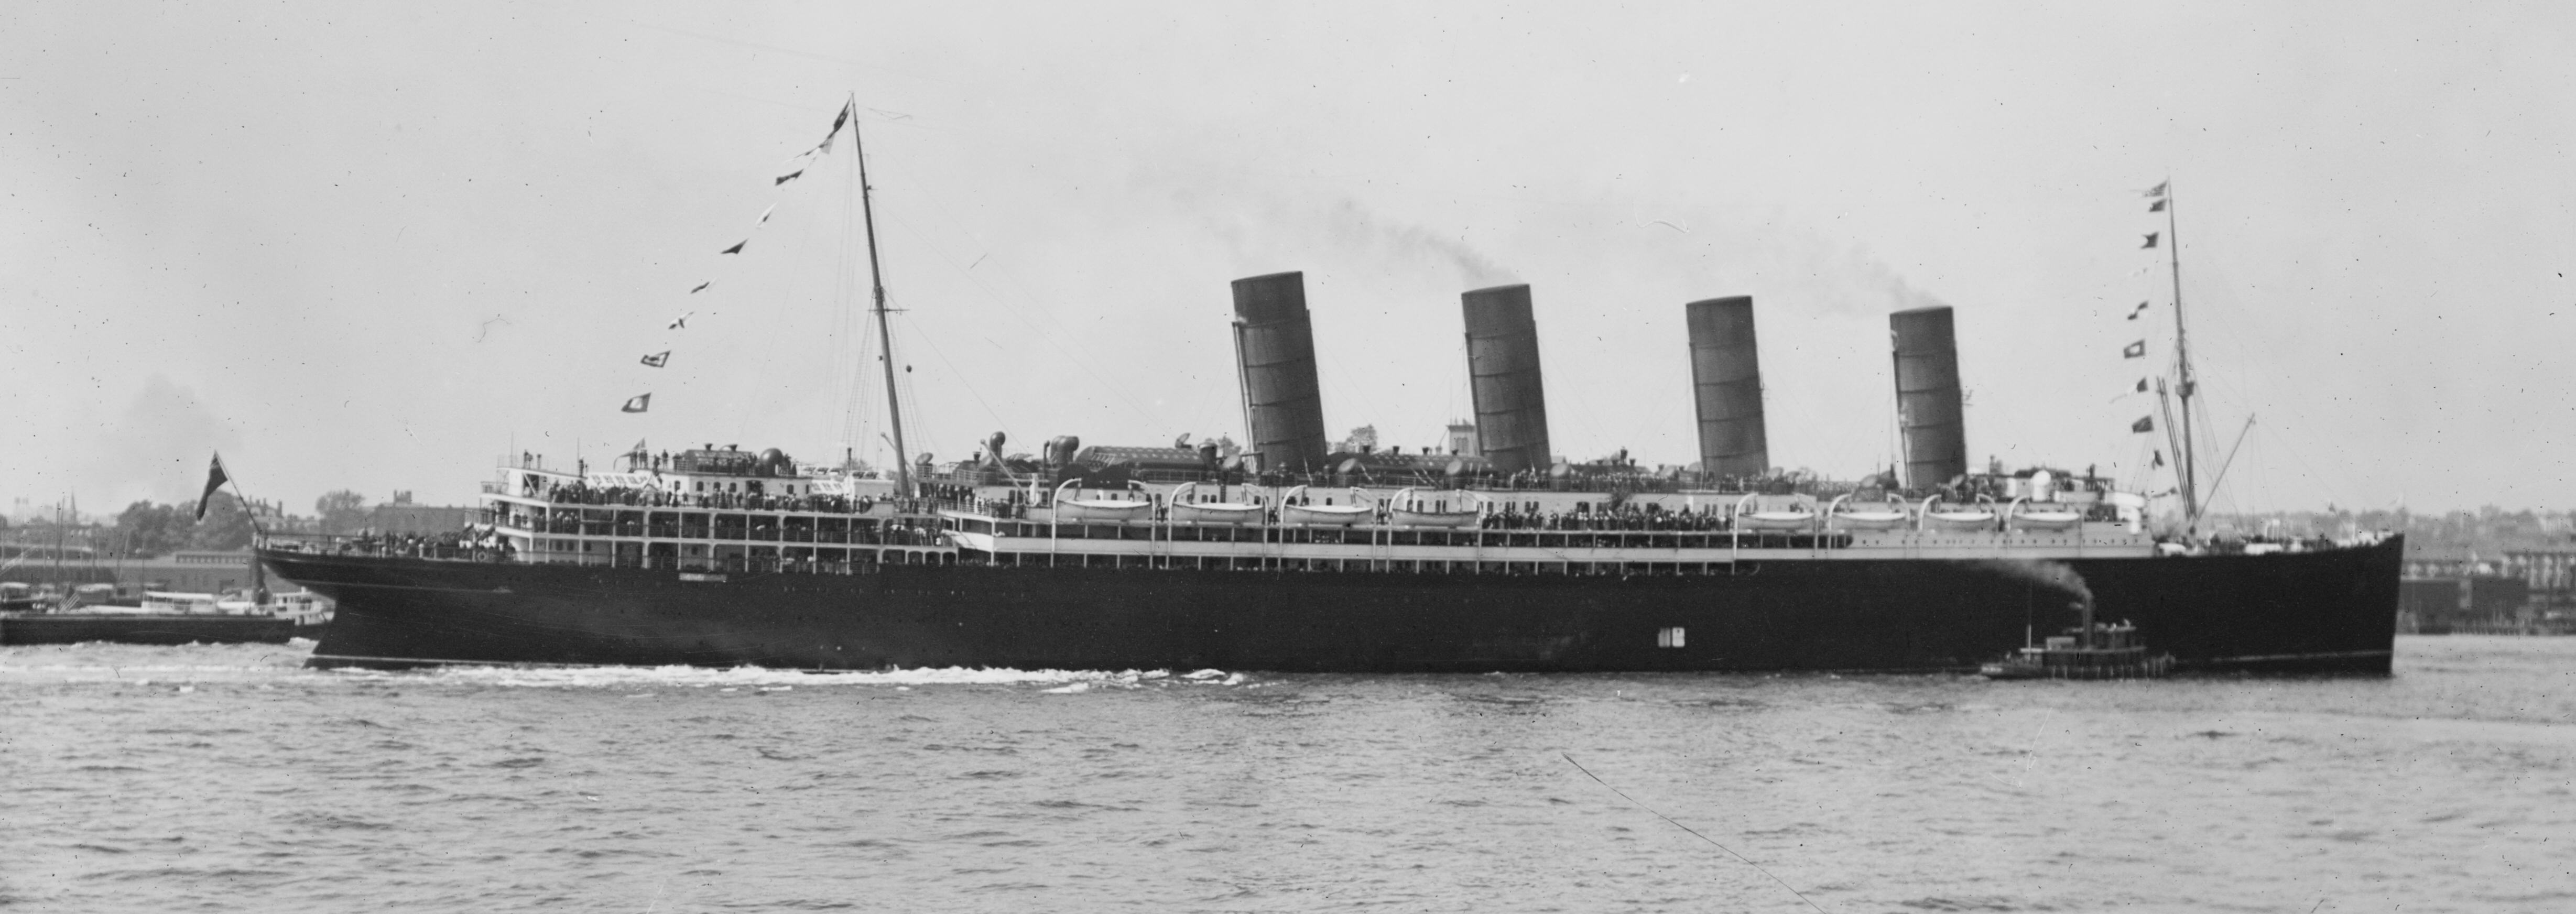 1 Rms Lusitania HD Wallpapers Background Images